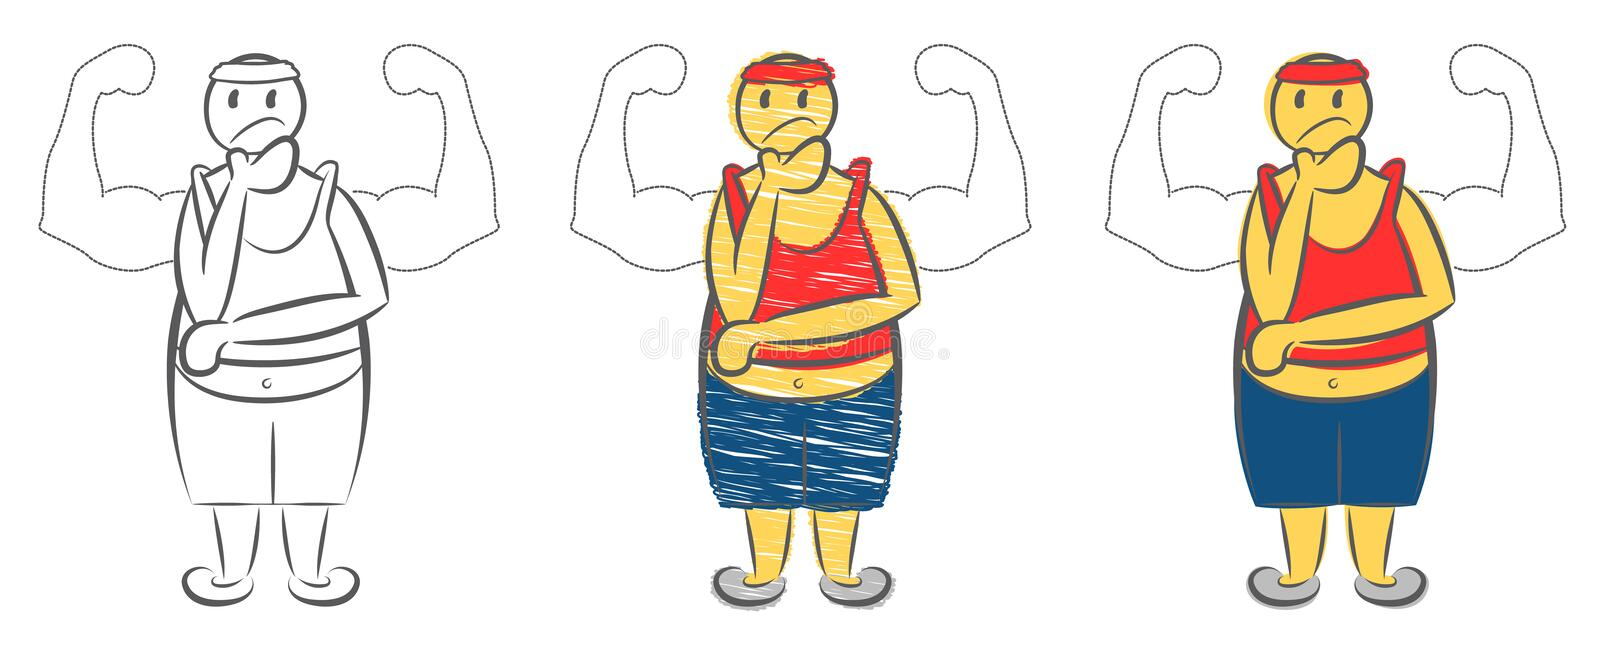 Overweight man dreaming about muscular body. Weight loss concept. Character pretend to be strong man. Young fat guy dreaming. stock illustration